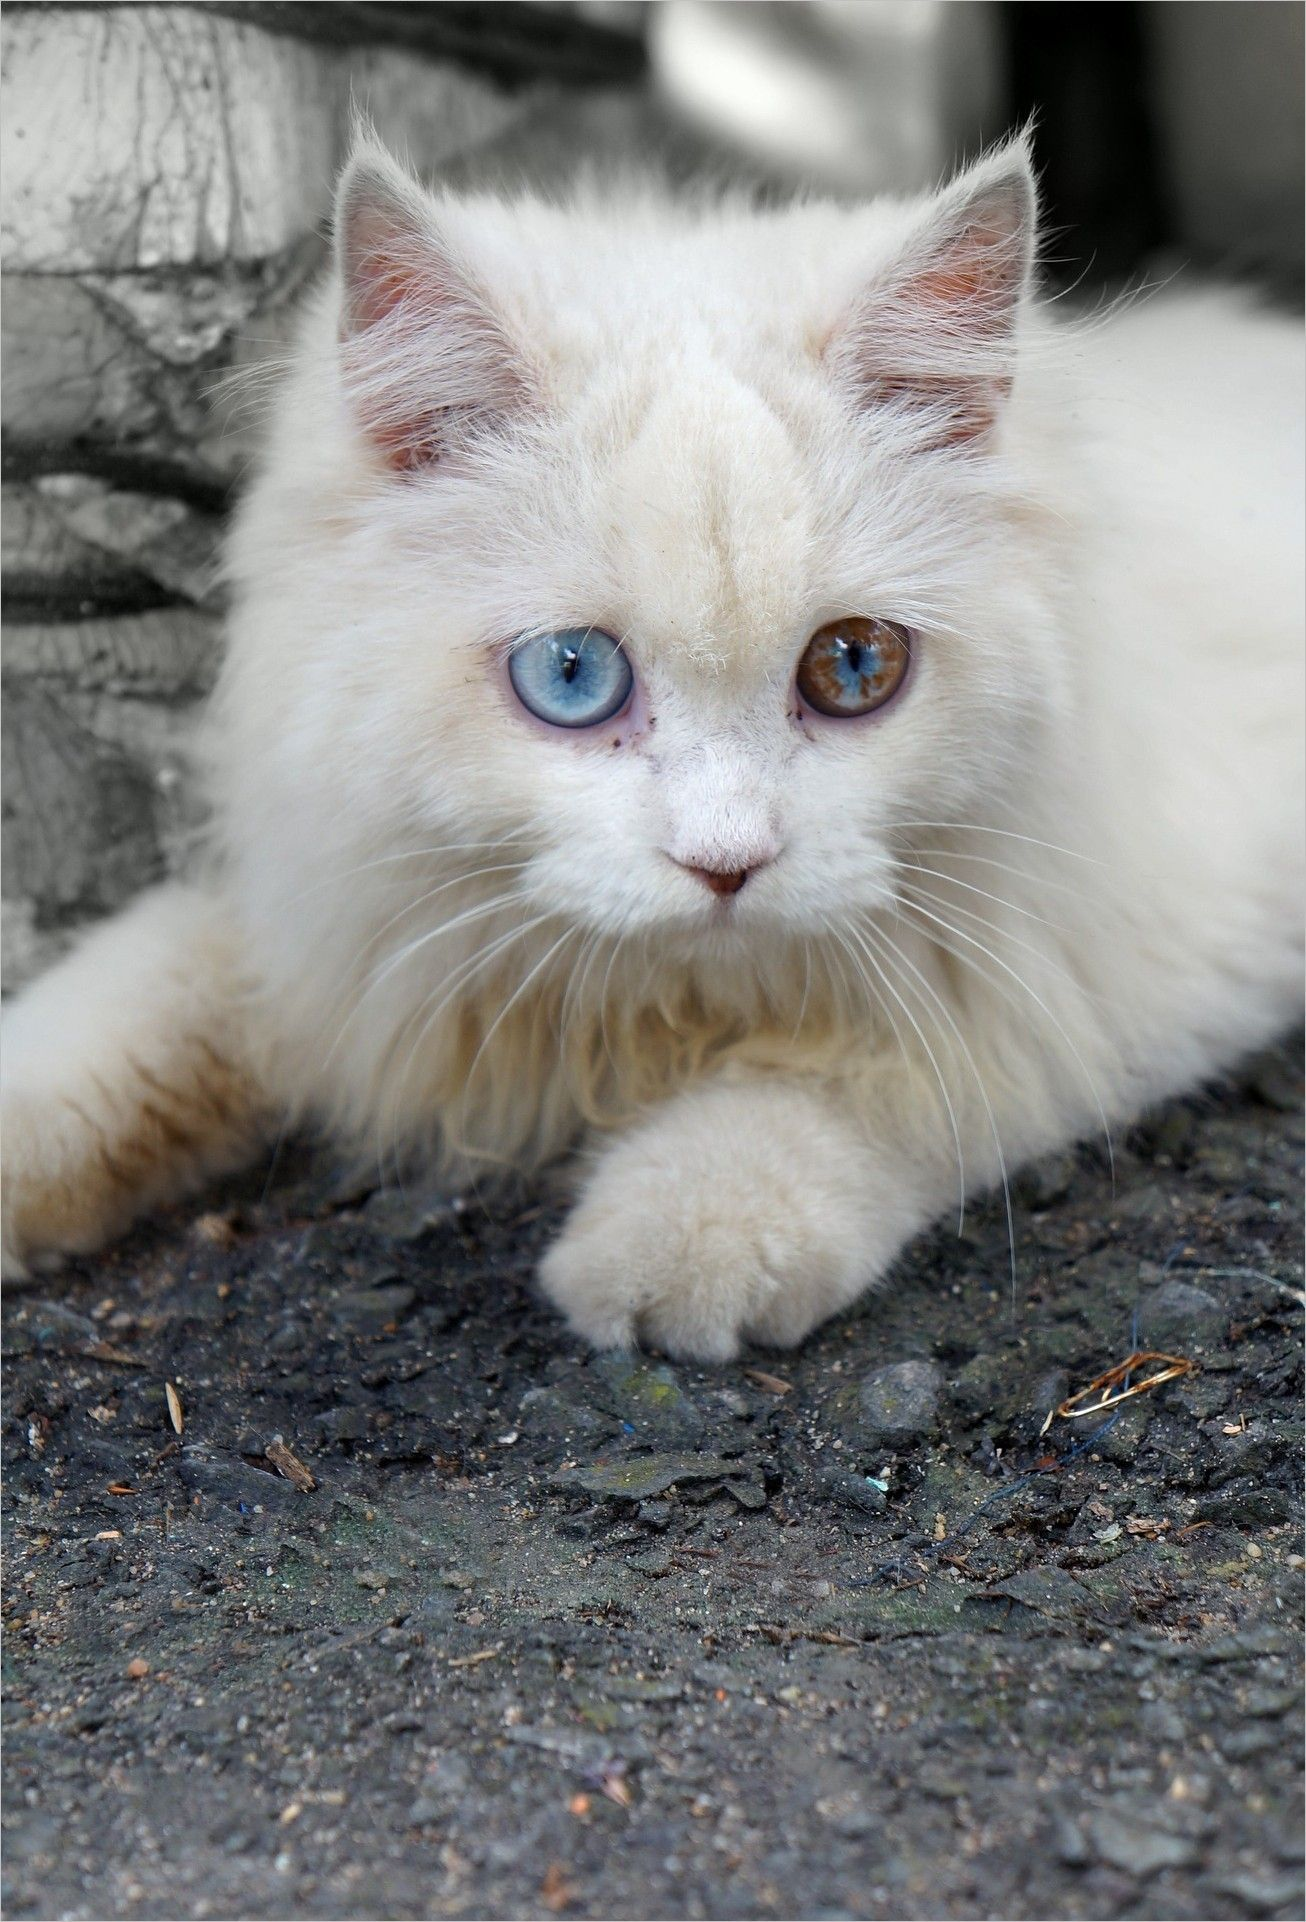 Cat Wallpaper Img Pictures Cat Eyes Pets White Cat Blue Eyes